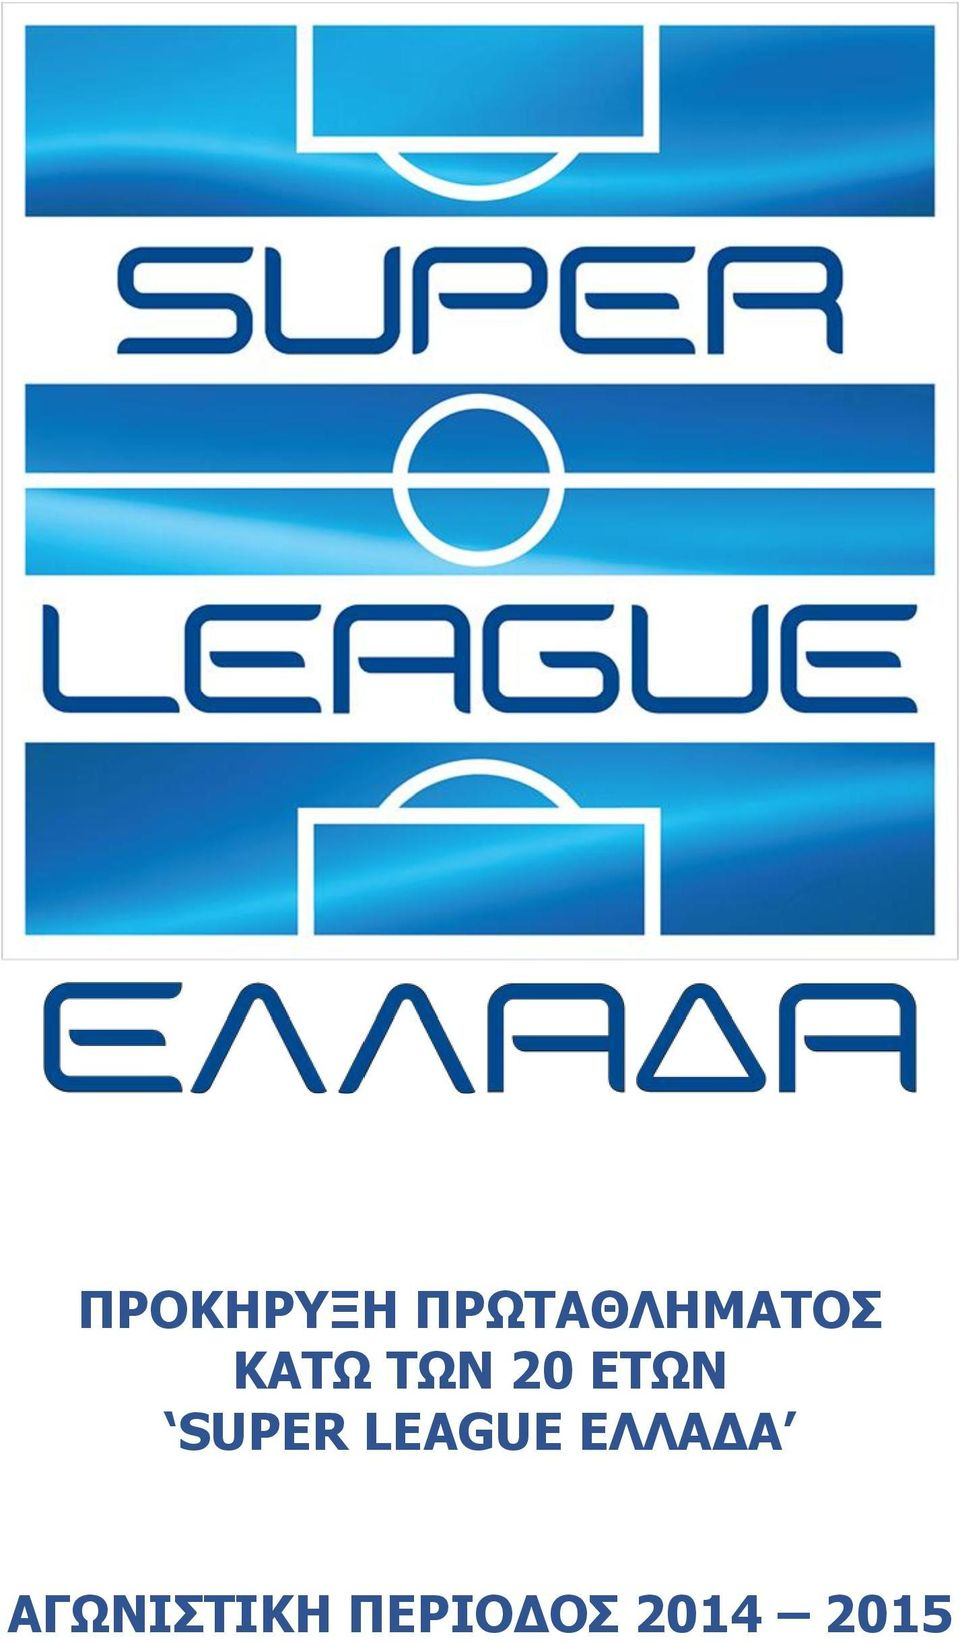 20 ΕΤΩΝ SUPER LEAGUE